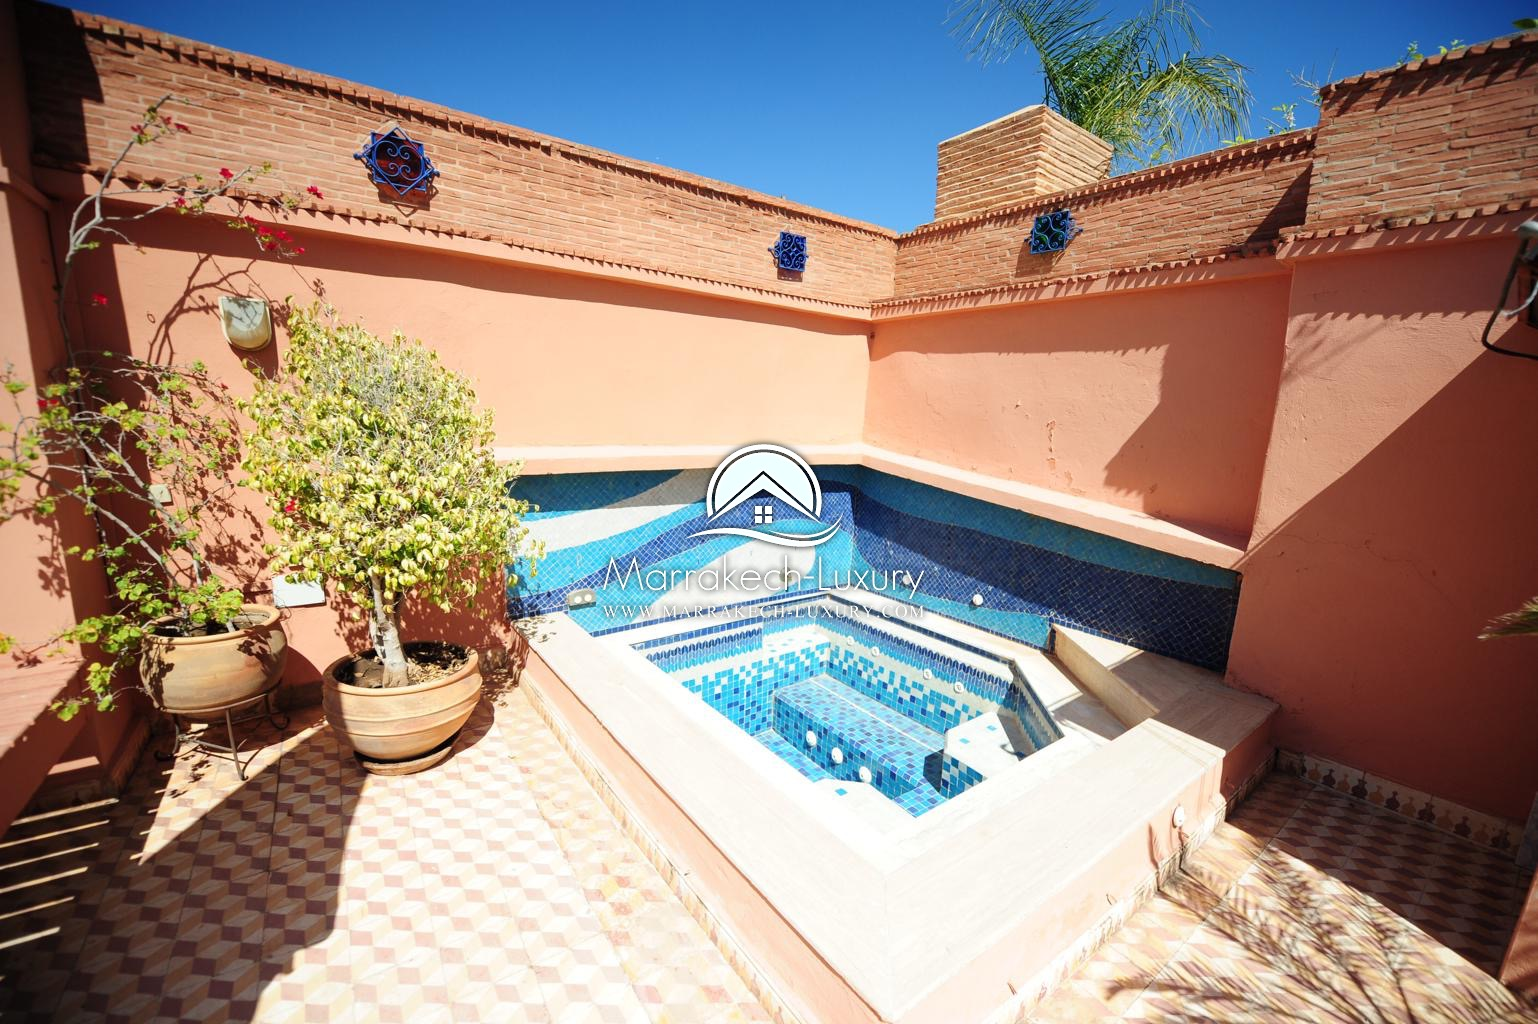 Riaavmed1036ma 47 agence immobili re marrakech acheter for Agence immobiliere 47